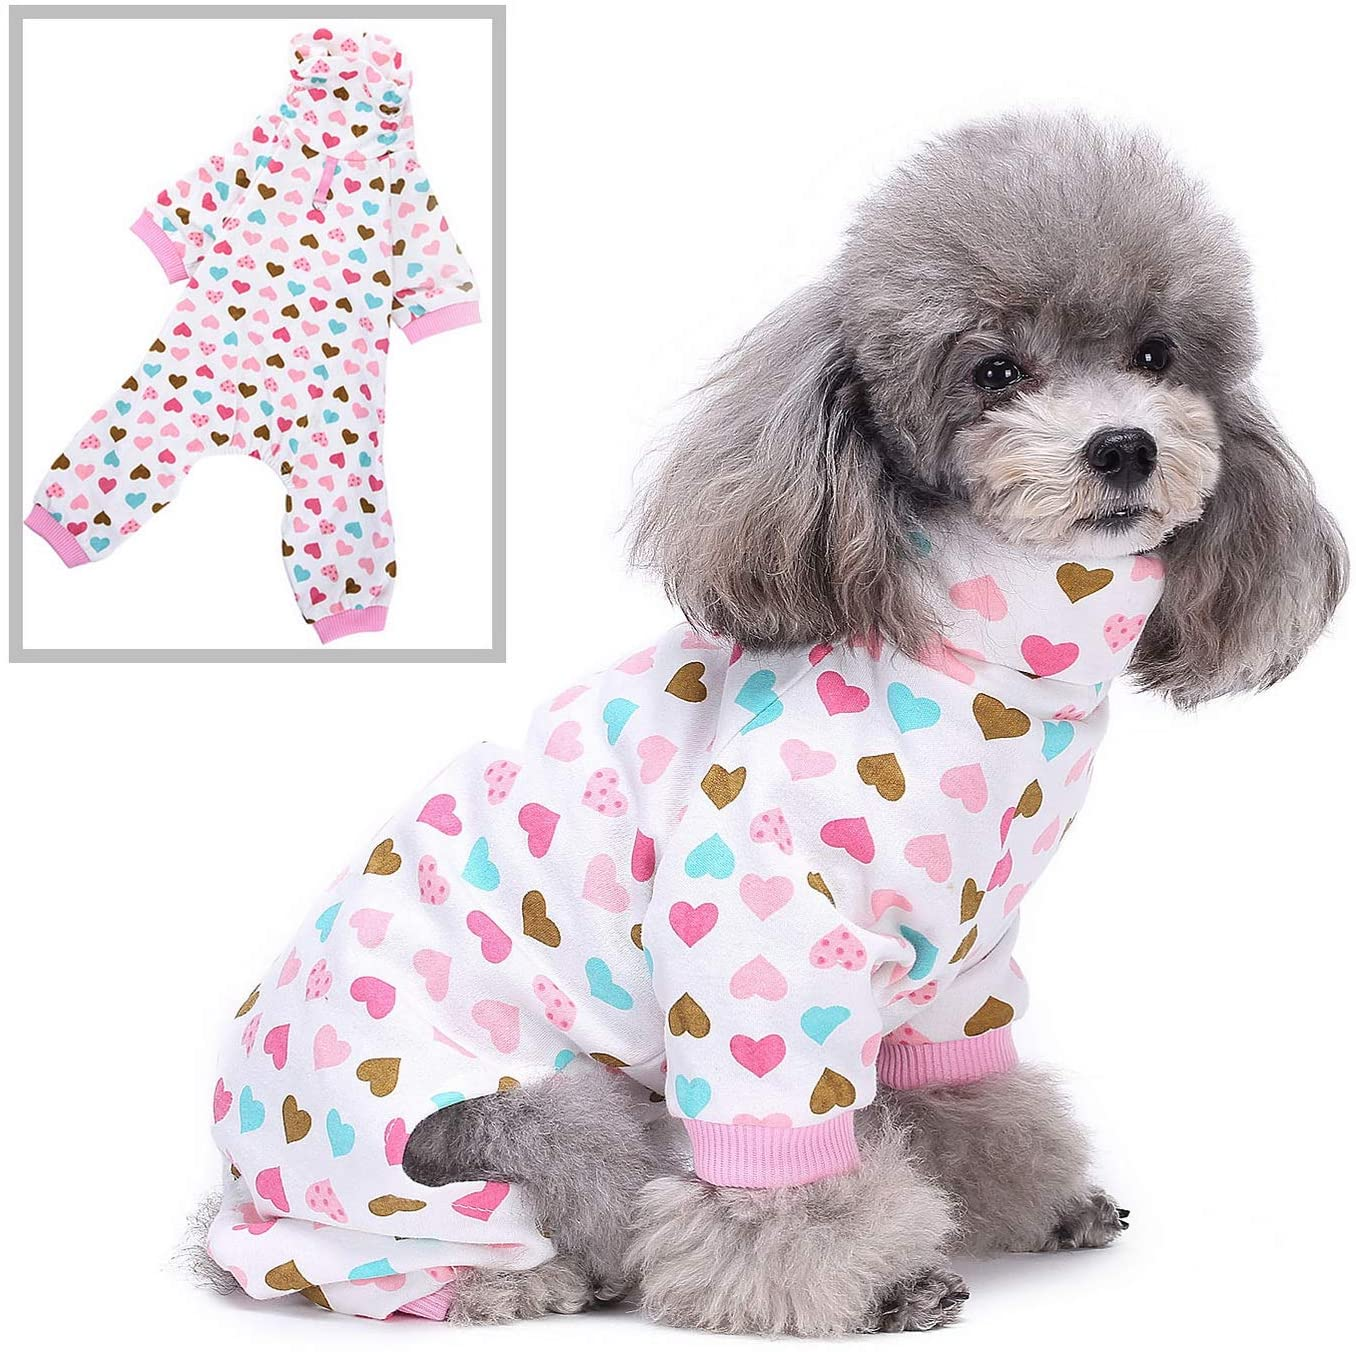 SELMAI Dog Pajamas Cat Pjs Sleepwear Breathable Soft Cotton Elastic Cat Apparel Pet Costume High Cowl Neck Heart Rompers for Small Puppy Girls Shirts Doggies Jumpsuit Easy on Spring Autumn Clothes